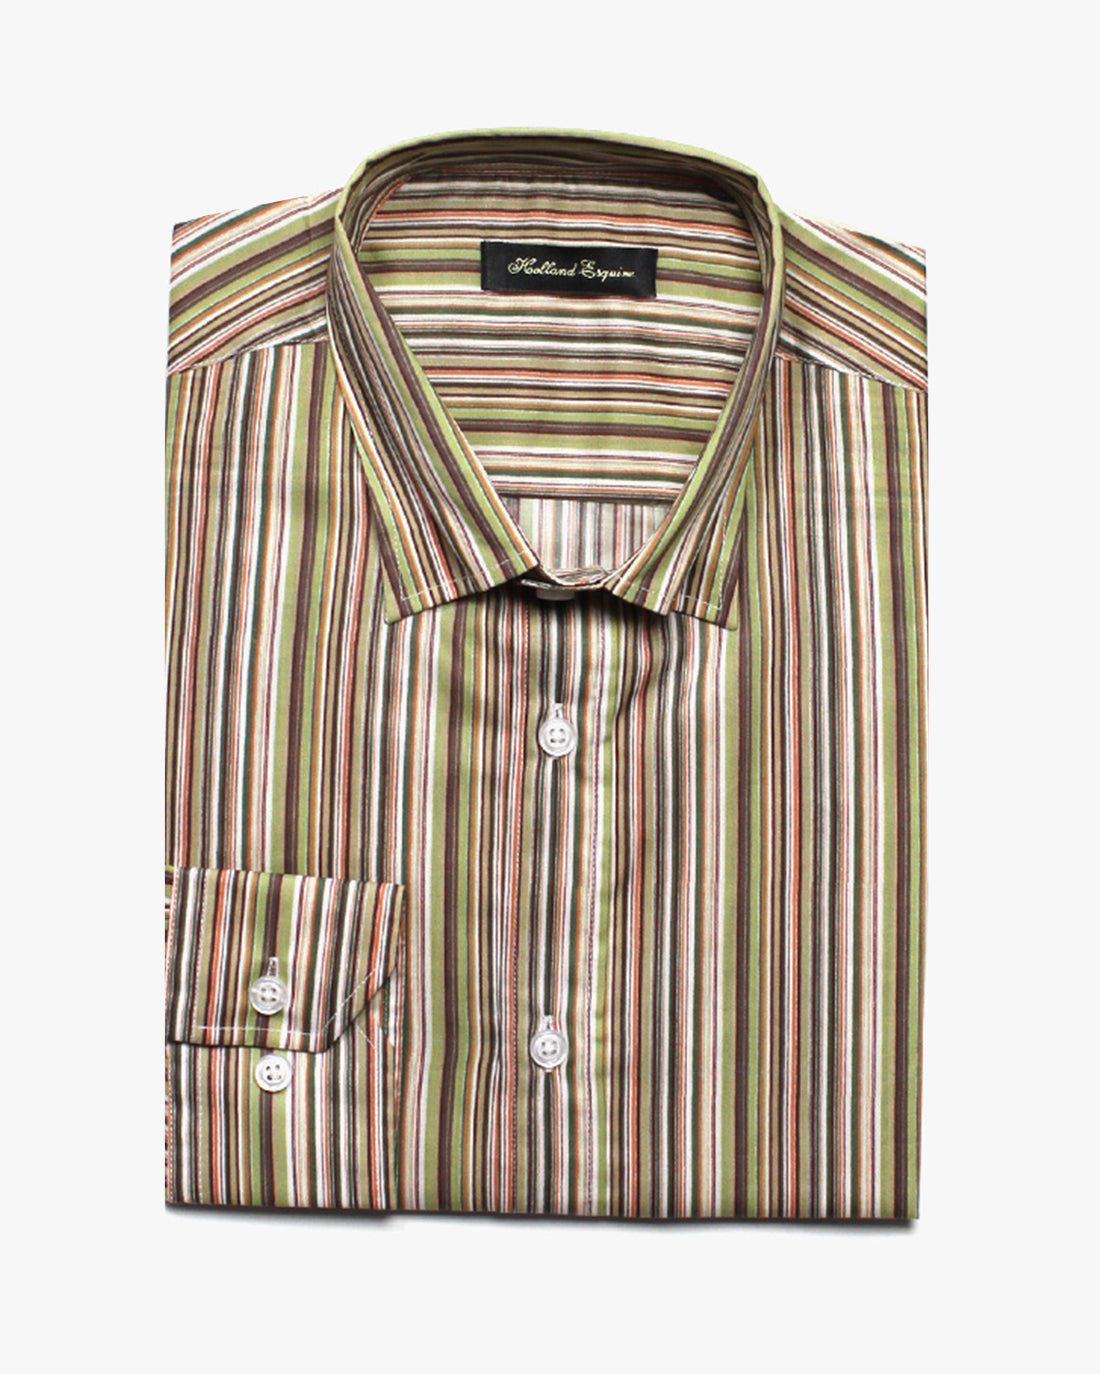 Green Liberty Stripe Button Under Shirt - Holland Esquire